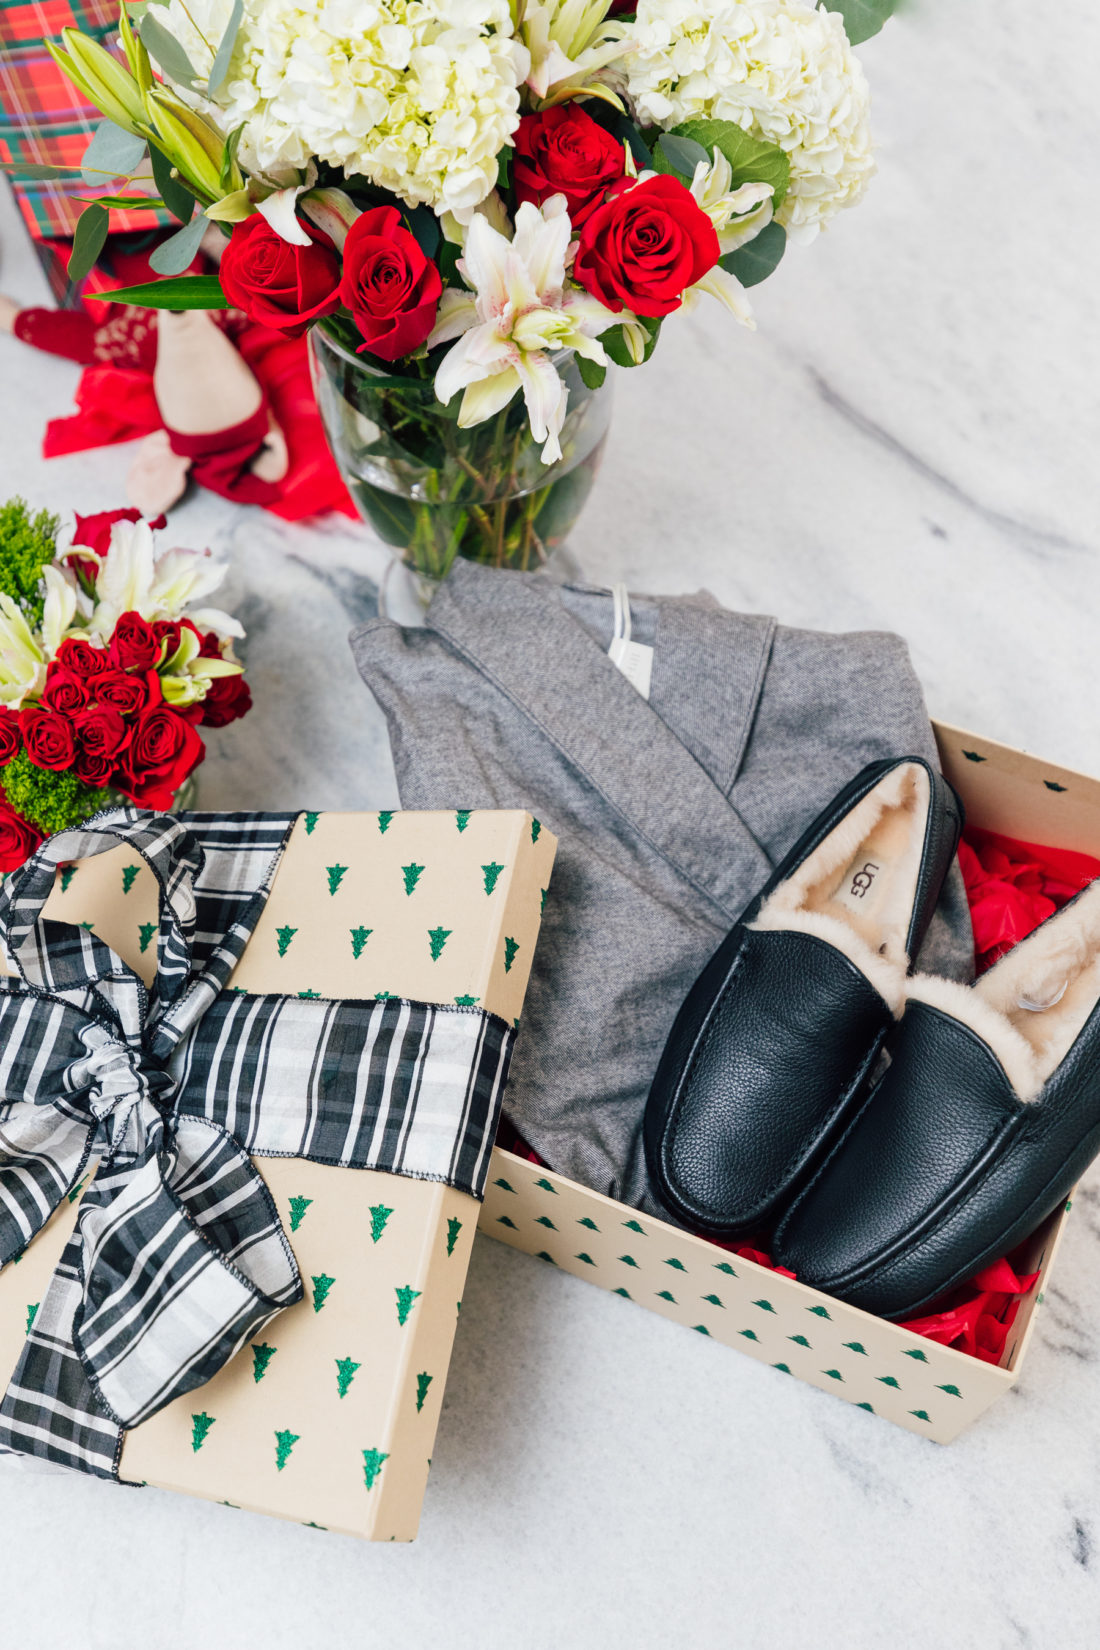 Eva Amurri Martino shares her favorite gifts from Garnet Hill, including this robe and slippers for her ex-husband Kyle